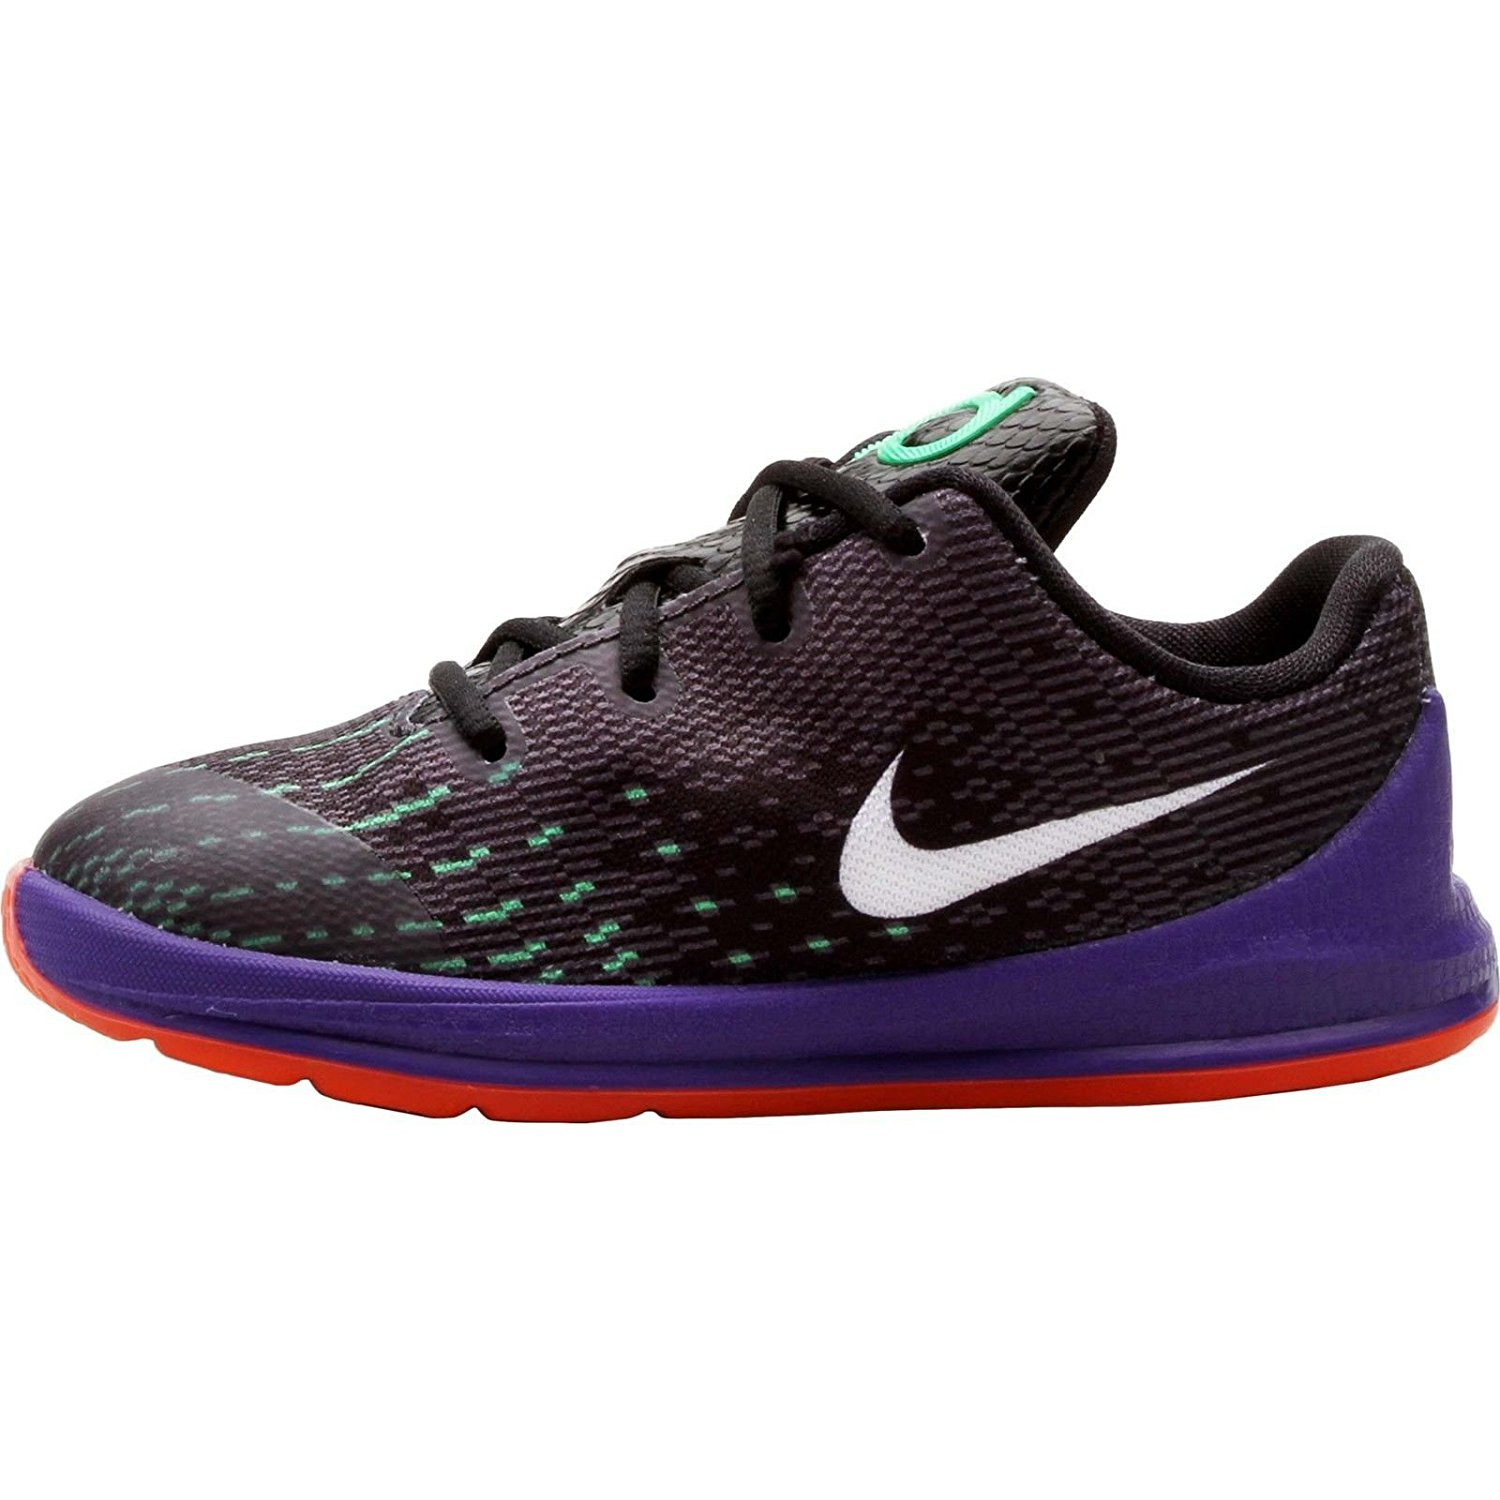 1881677b9246 Get Quotations · Nike KD 8 Preschool Boys Shoe Black Green Shock Hyper  Orange White 5C